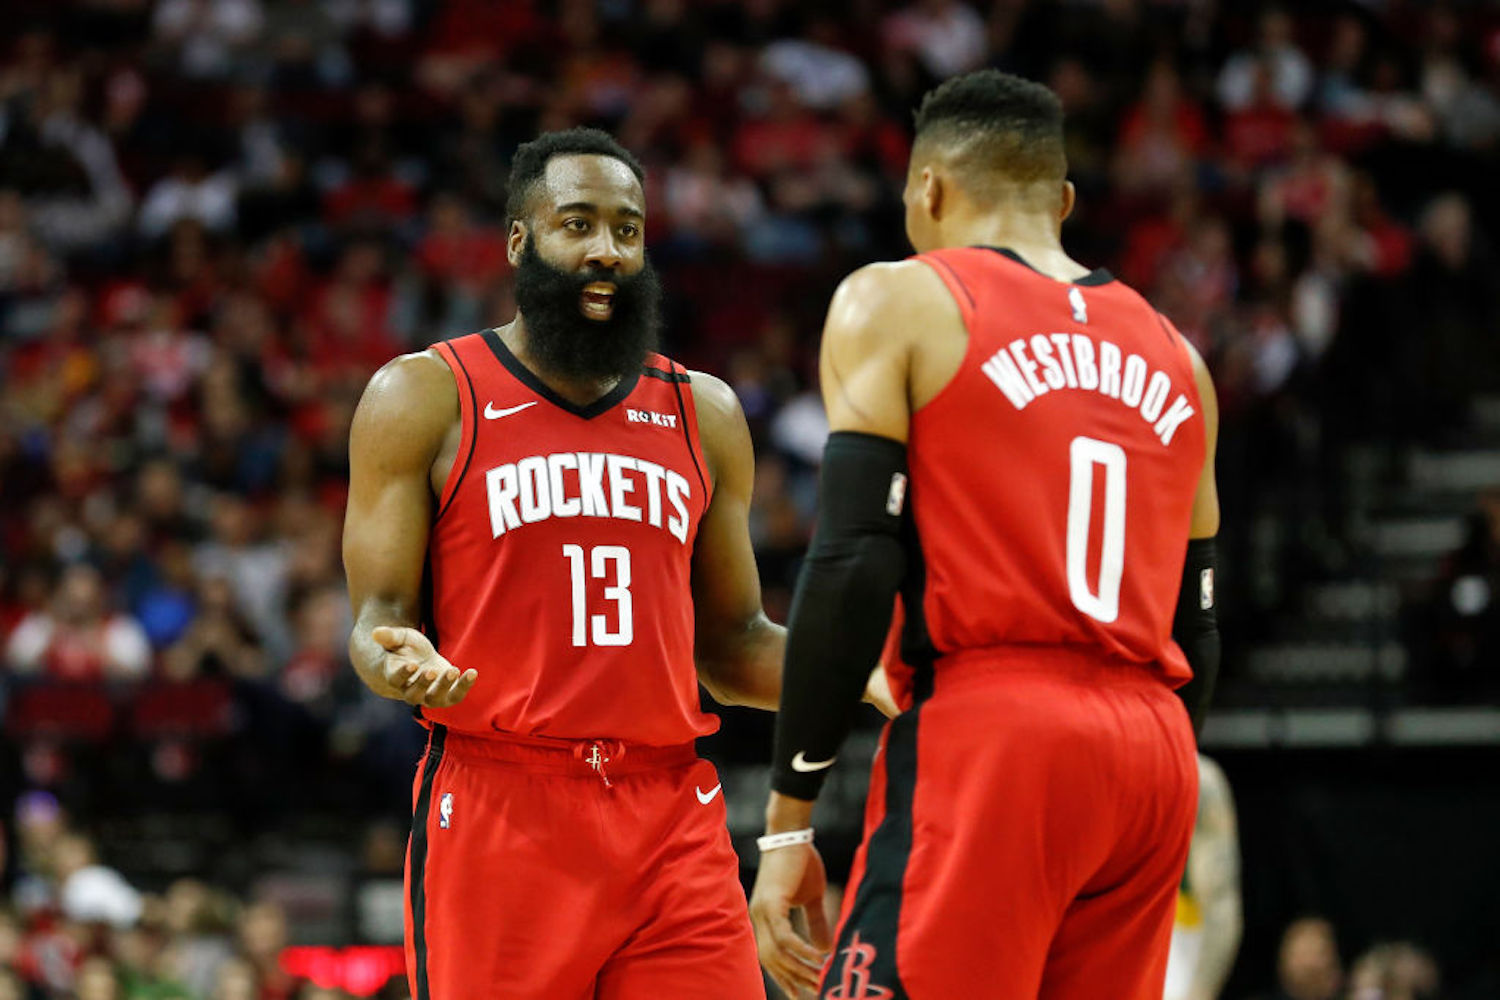 The Houston Rockets have been one of the top contenders in the Western Conference for years, but they could be falling apart at the seams.